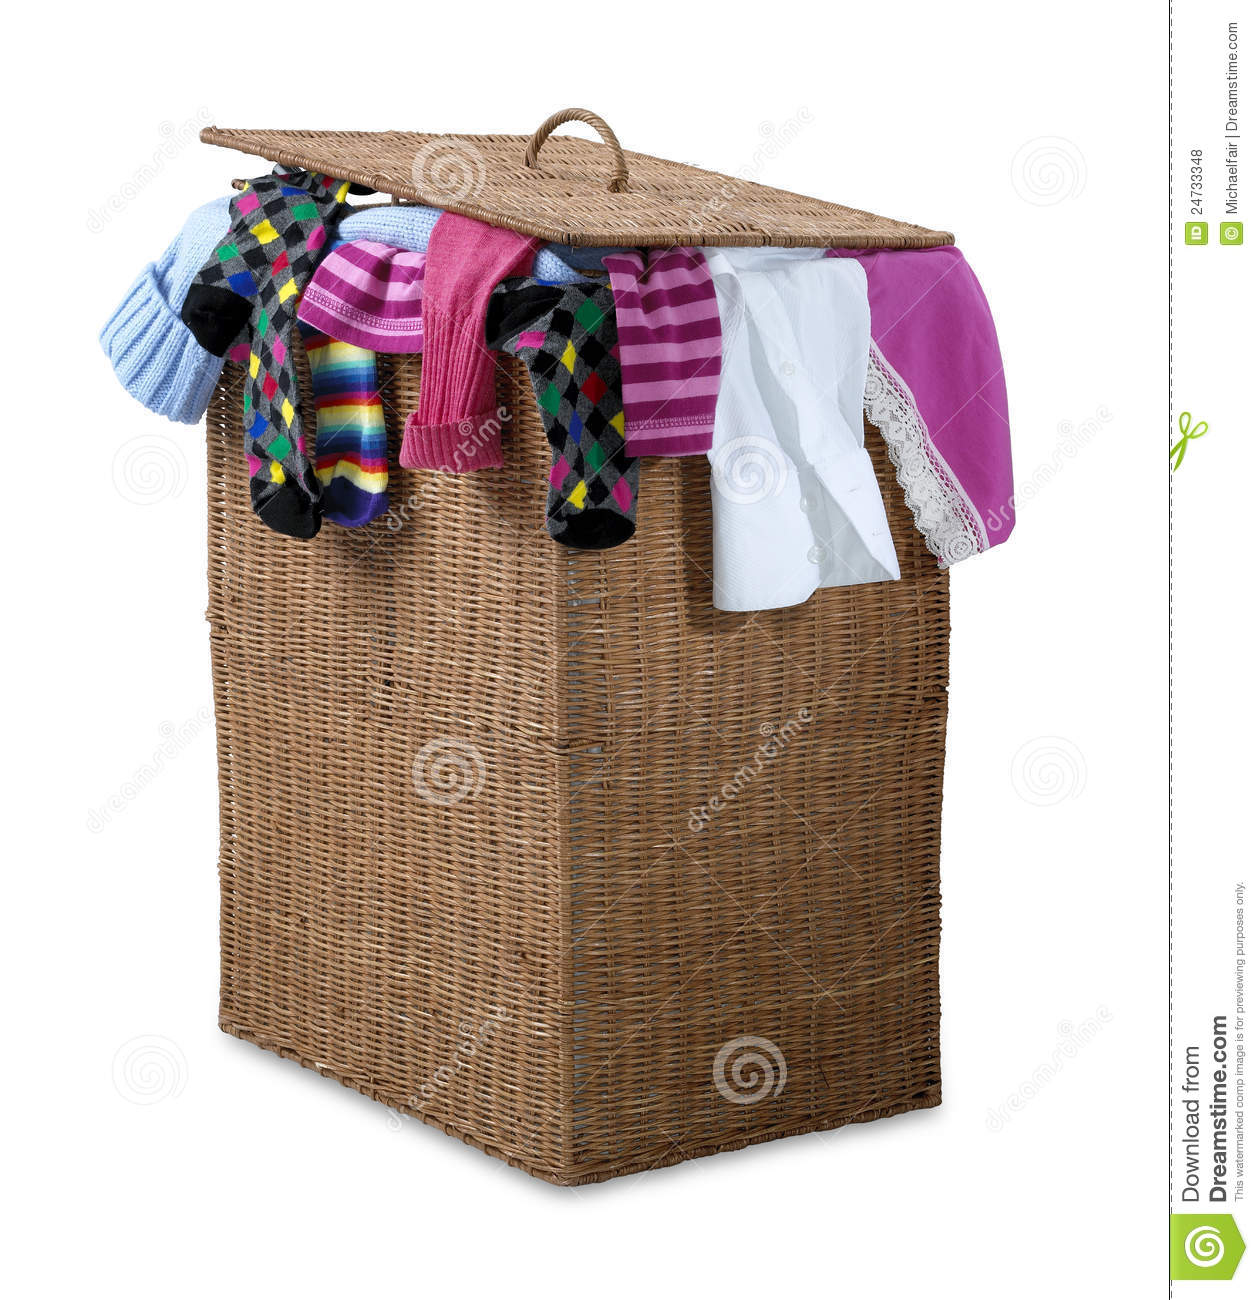 Put dirty clothes in hamper clipart clipart suggest - Hamper for dirty clothes ...